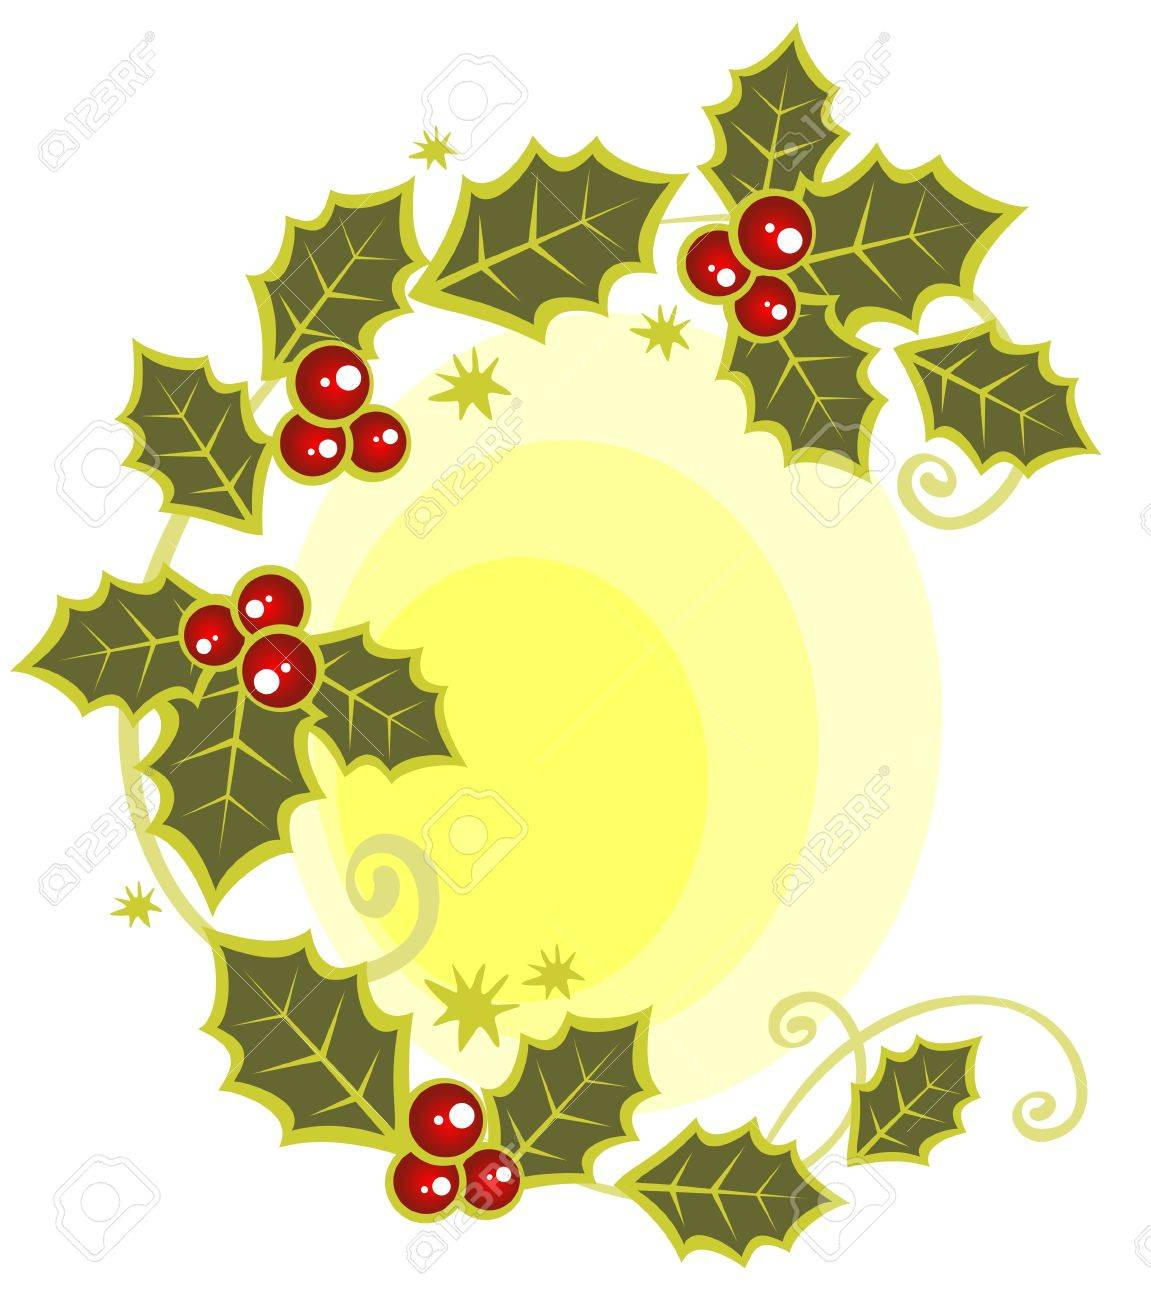 Christmas symbol from holly berry leaves pattern. Stock Vector - 3718700